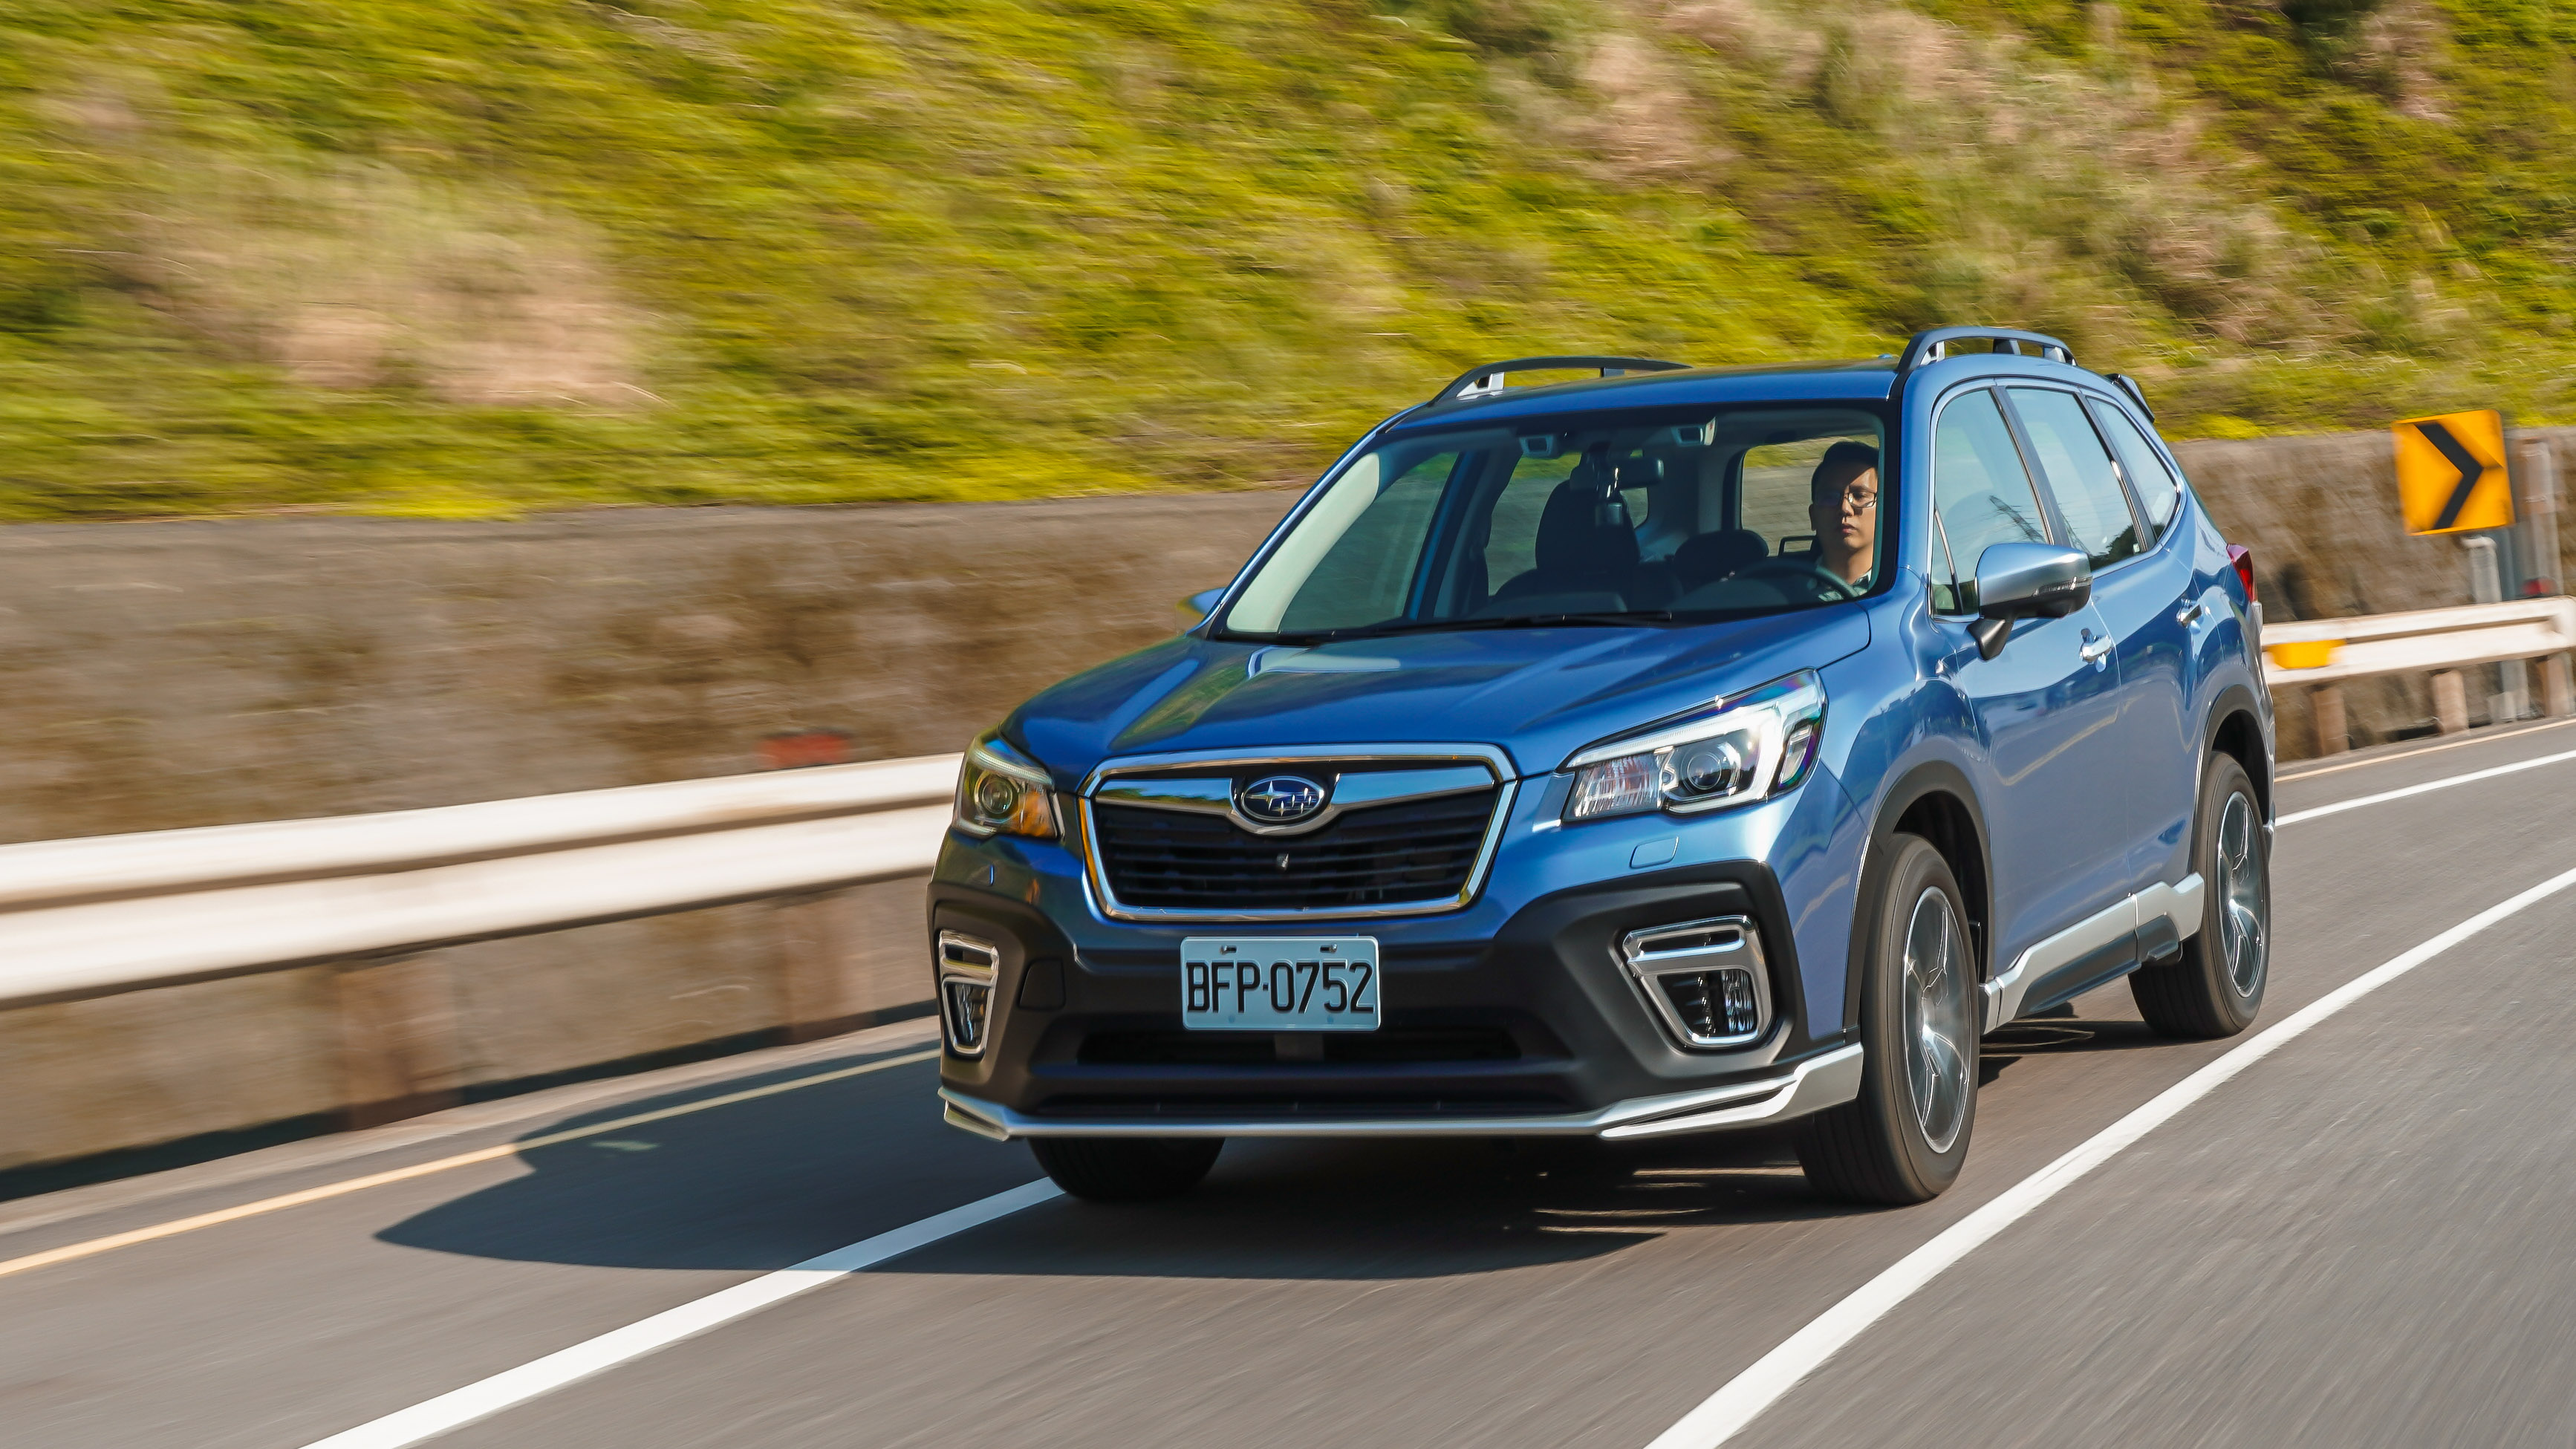 百萬級休旅?越野愛好者別忘了 Subaru Forester GT Edition